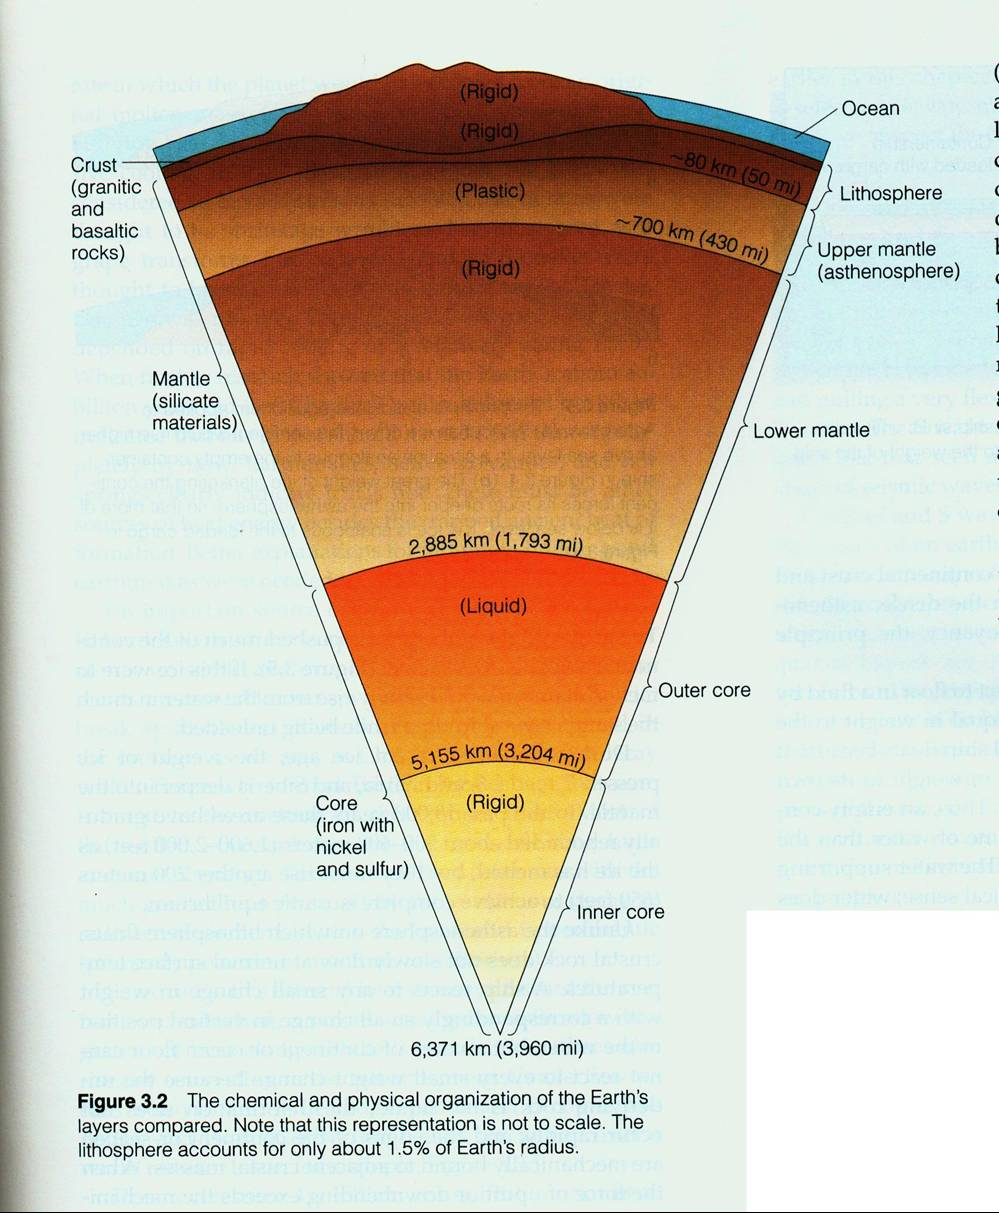 venuss surface temperature is ____ than earths surface temperature